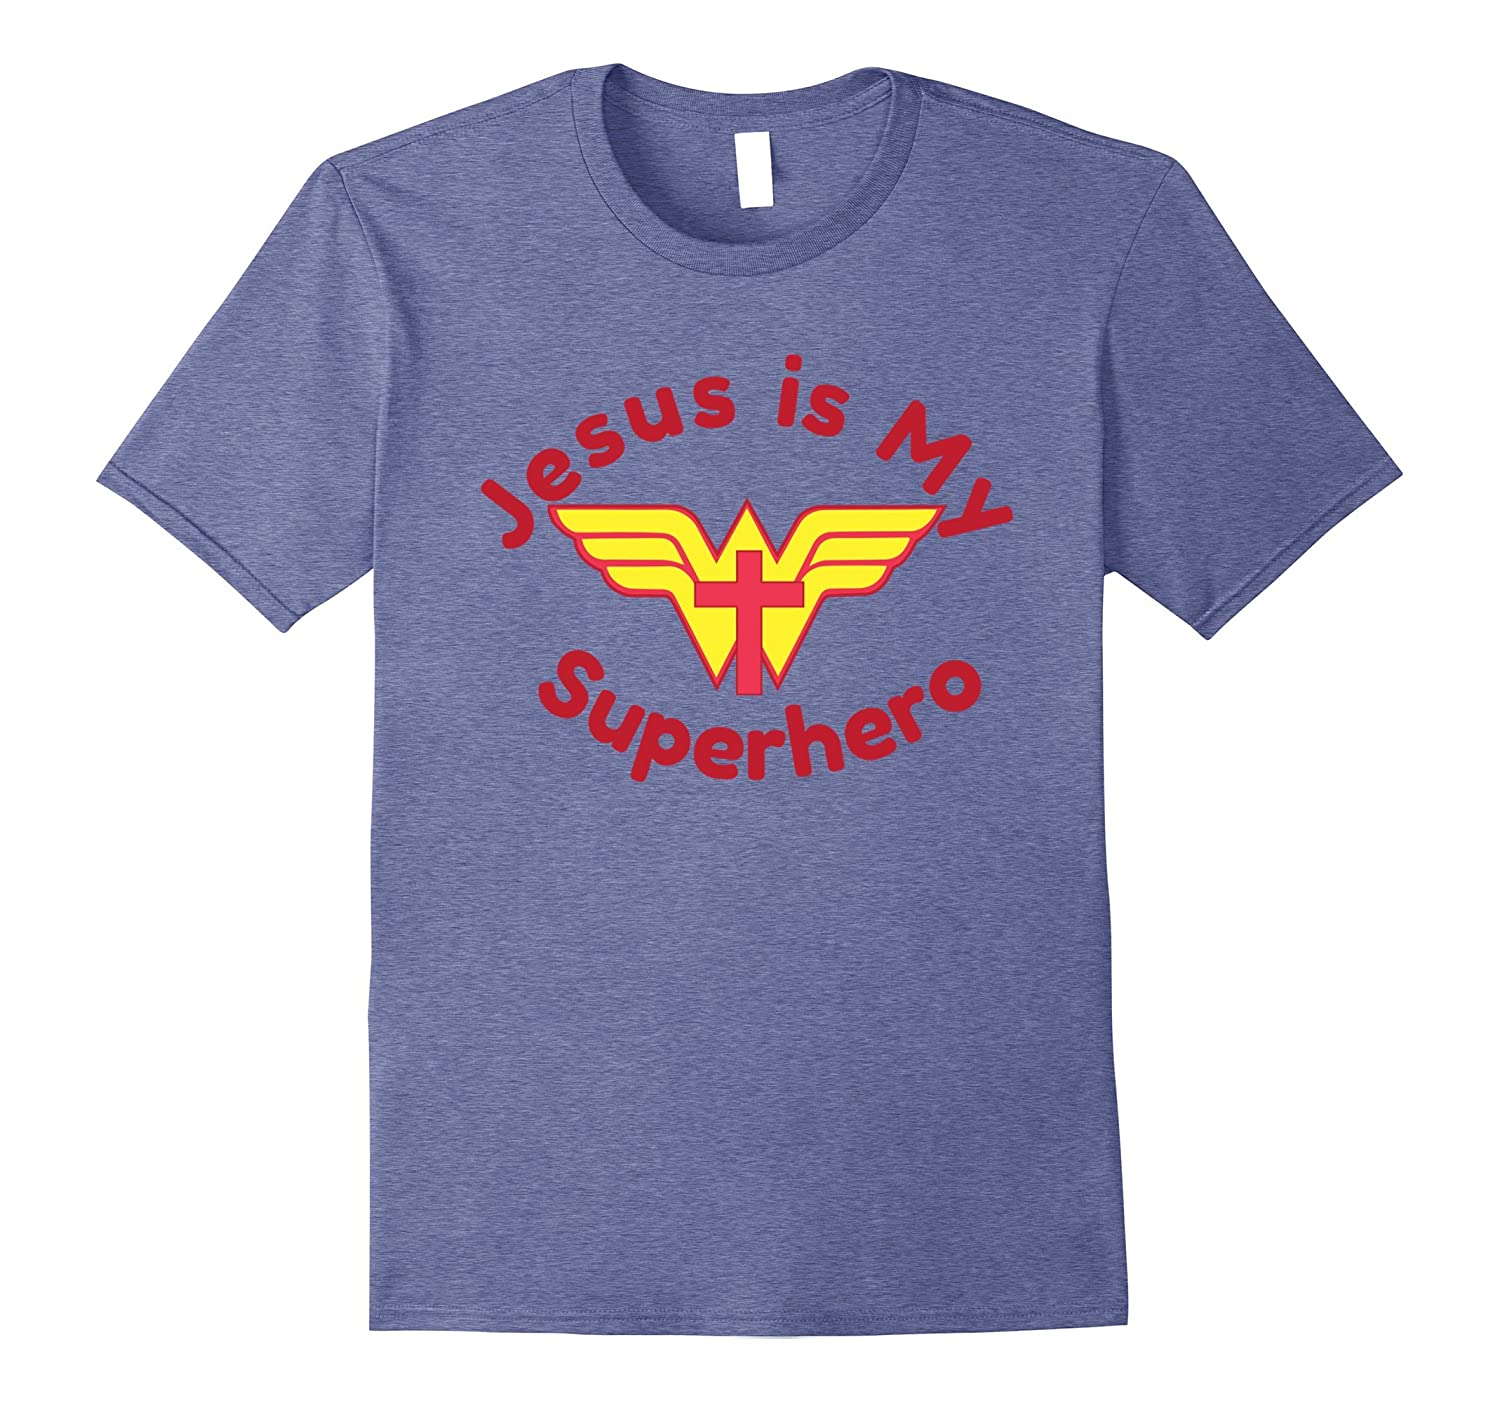 JESUS IS MY SUPERHERO shirt for Women